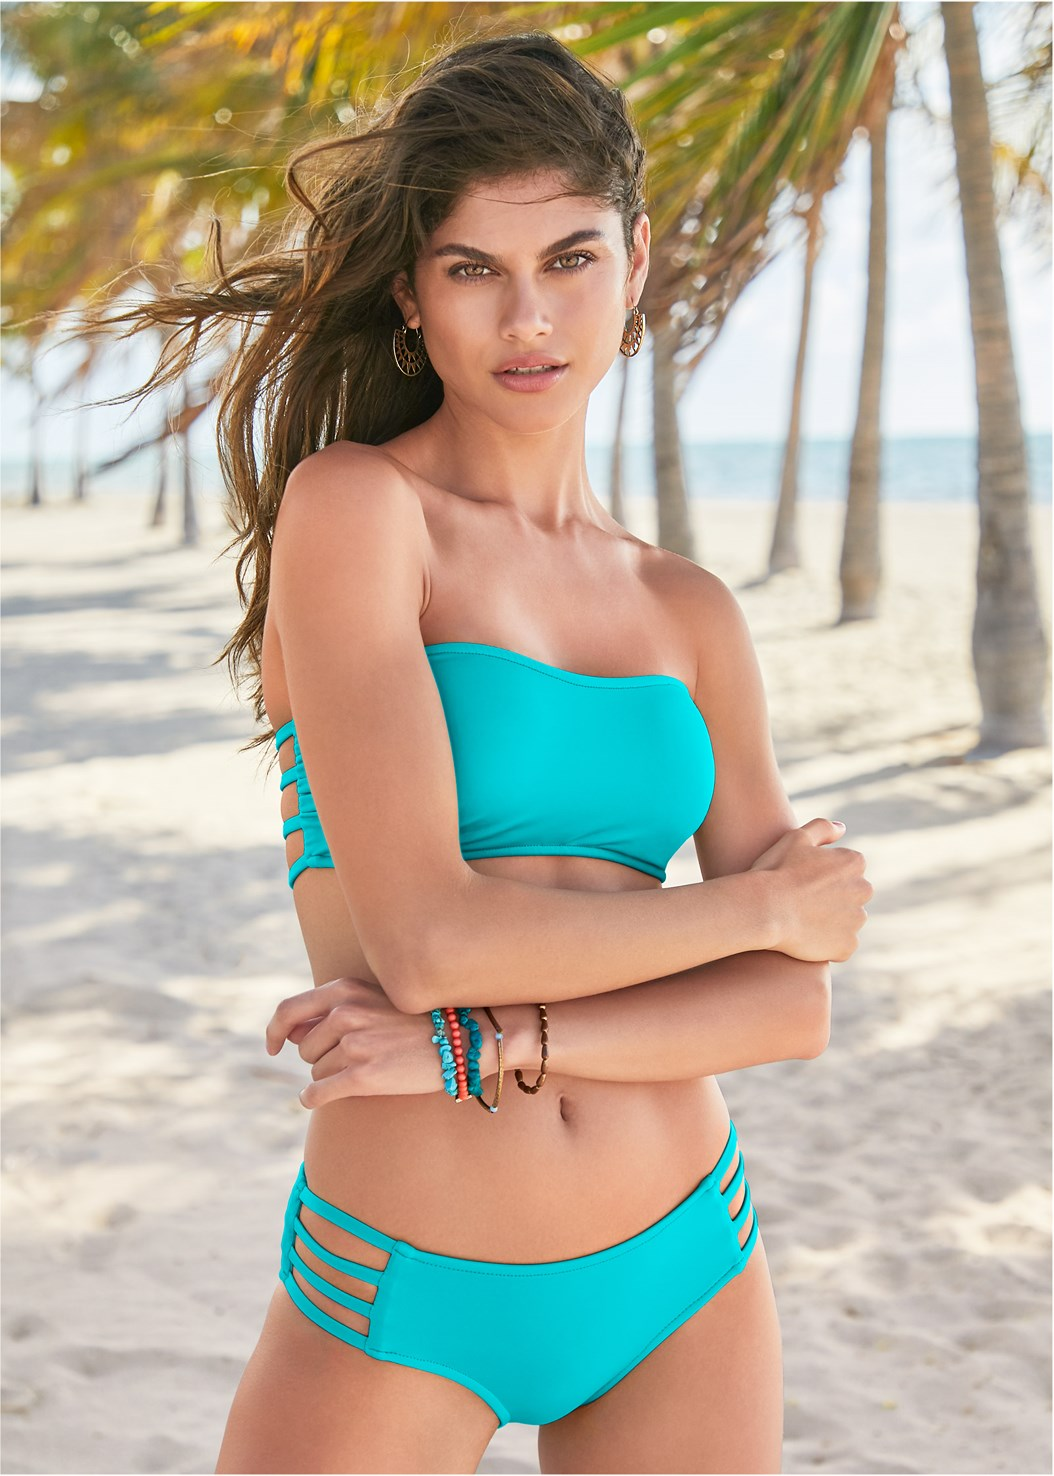 Mid Rise Strappy Bottom,Goddess Enhancer Push Up Halter Top,Triangle String Bikini Top,Hooded Pocket Cover-Up